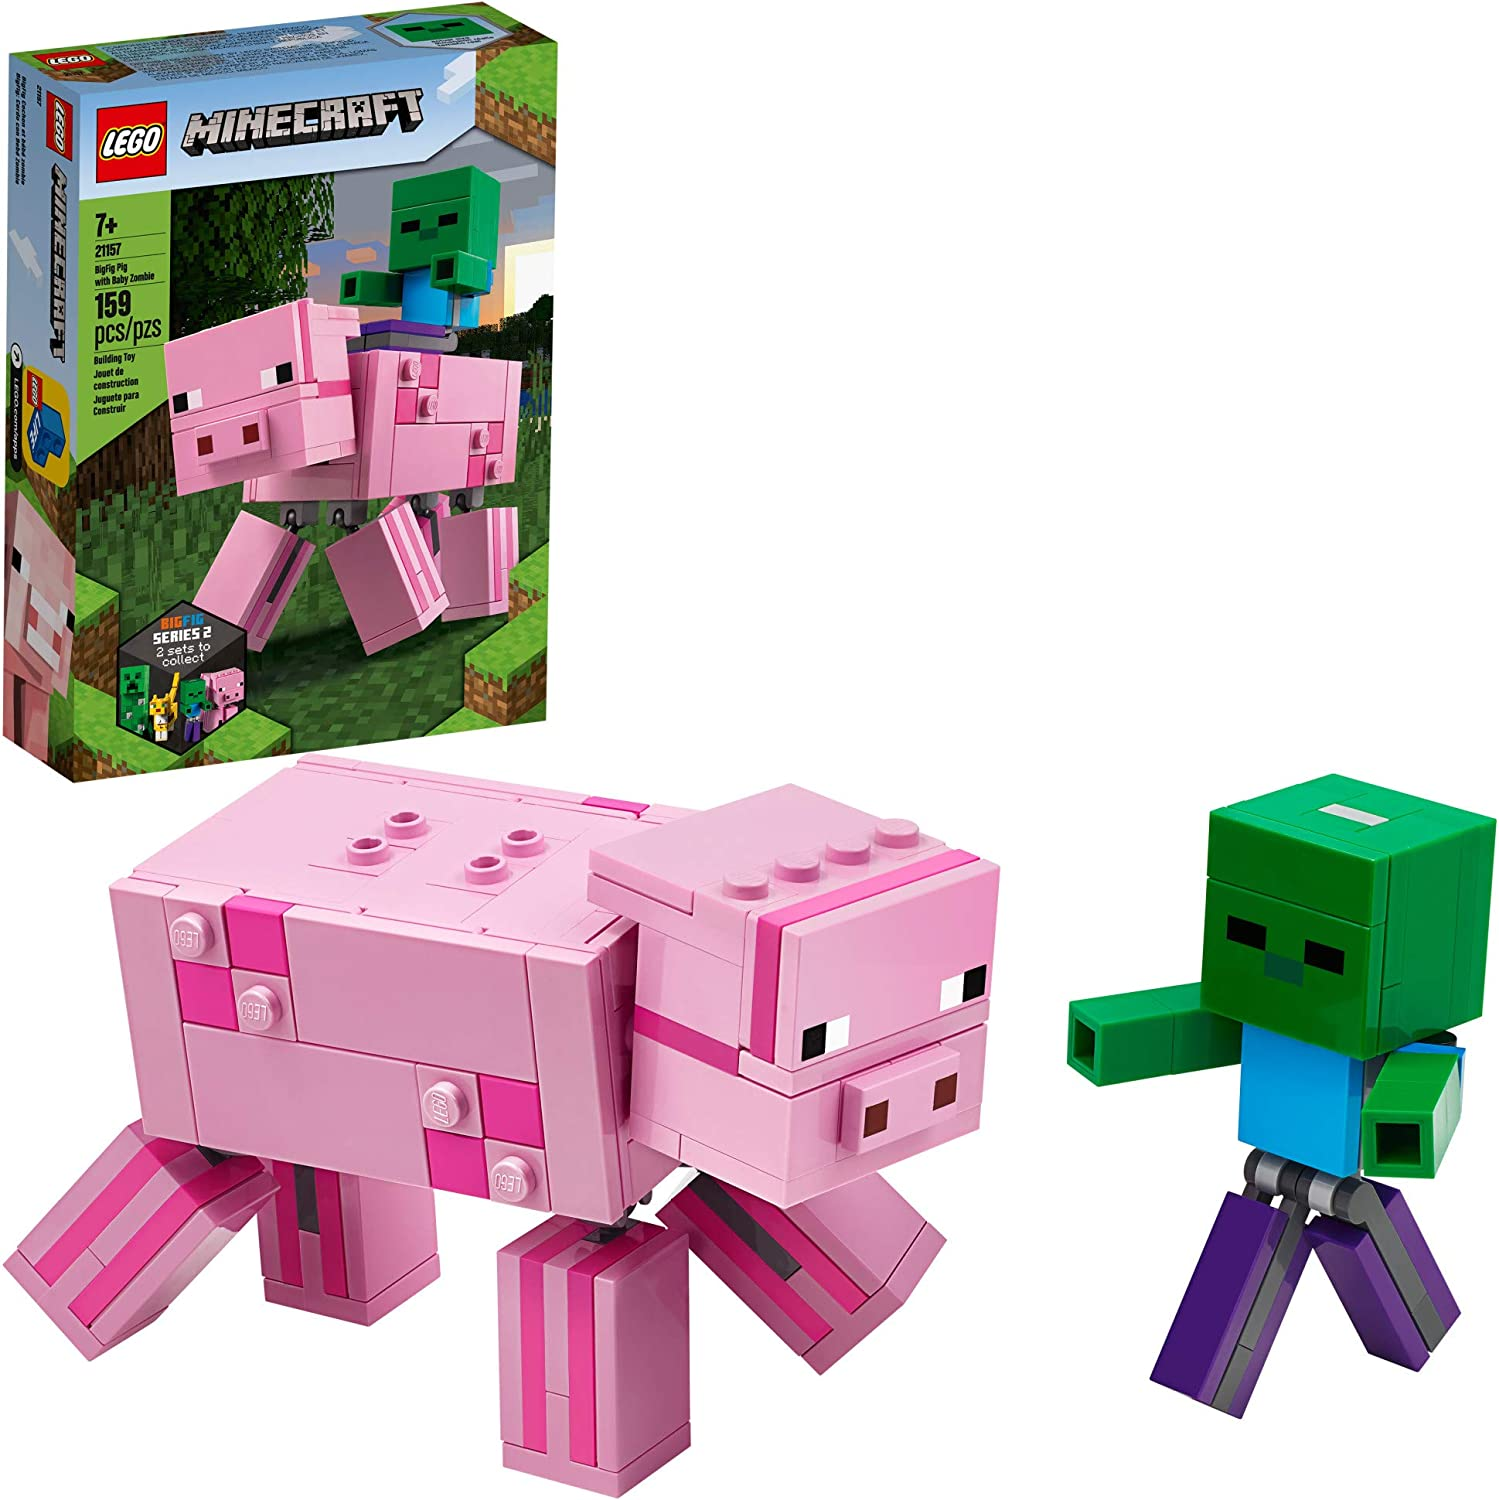 LEGO Minecraft Pig BigFig and Baby Zombie Character 21157 Cool Buildable Play-And-Display Toy Animal Figure for Kids, New 2020 (159 Pieces)